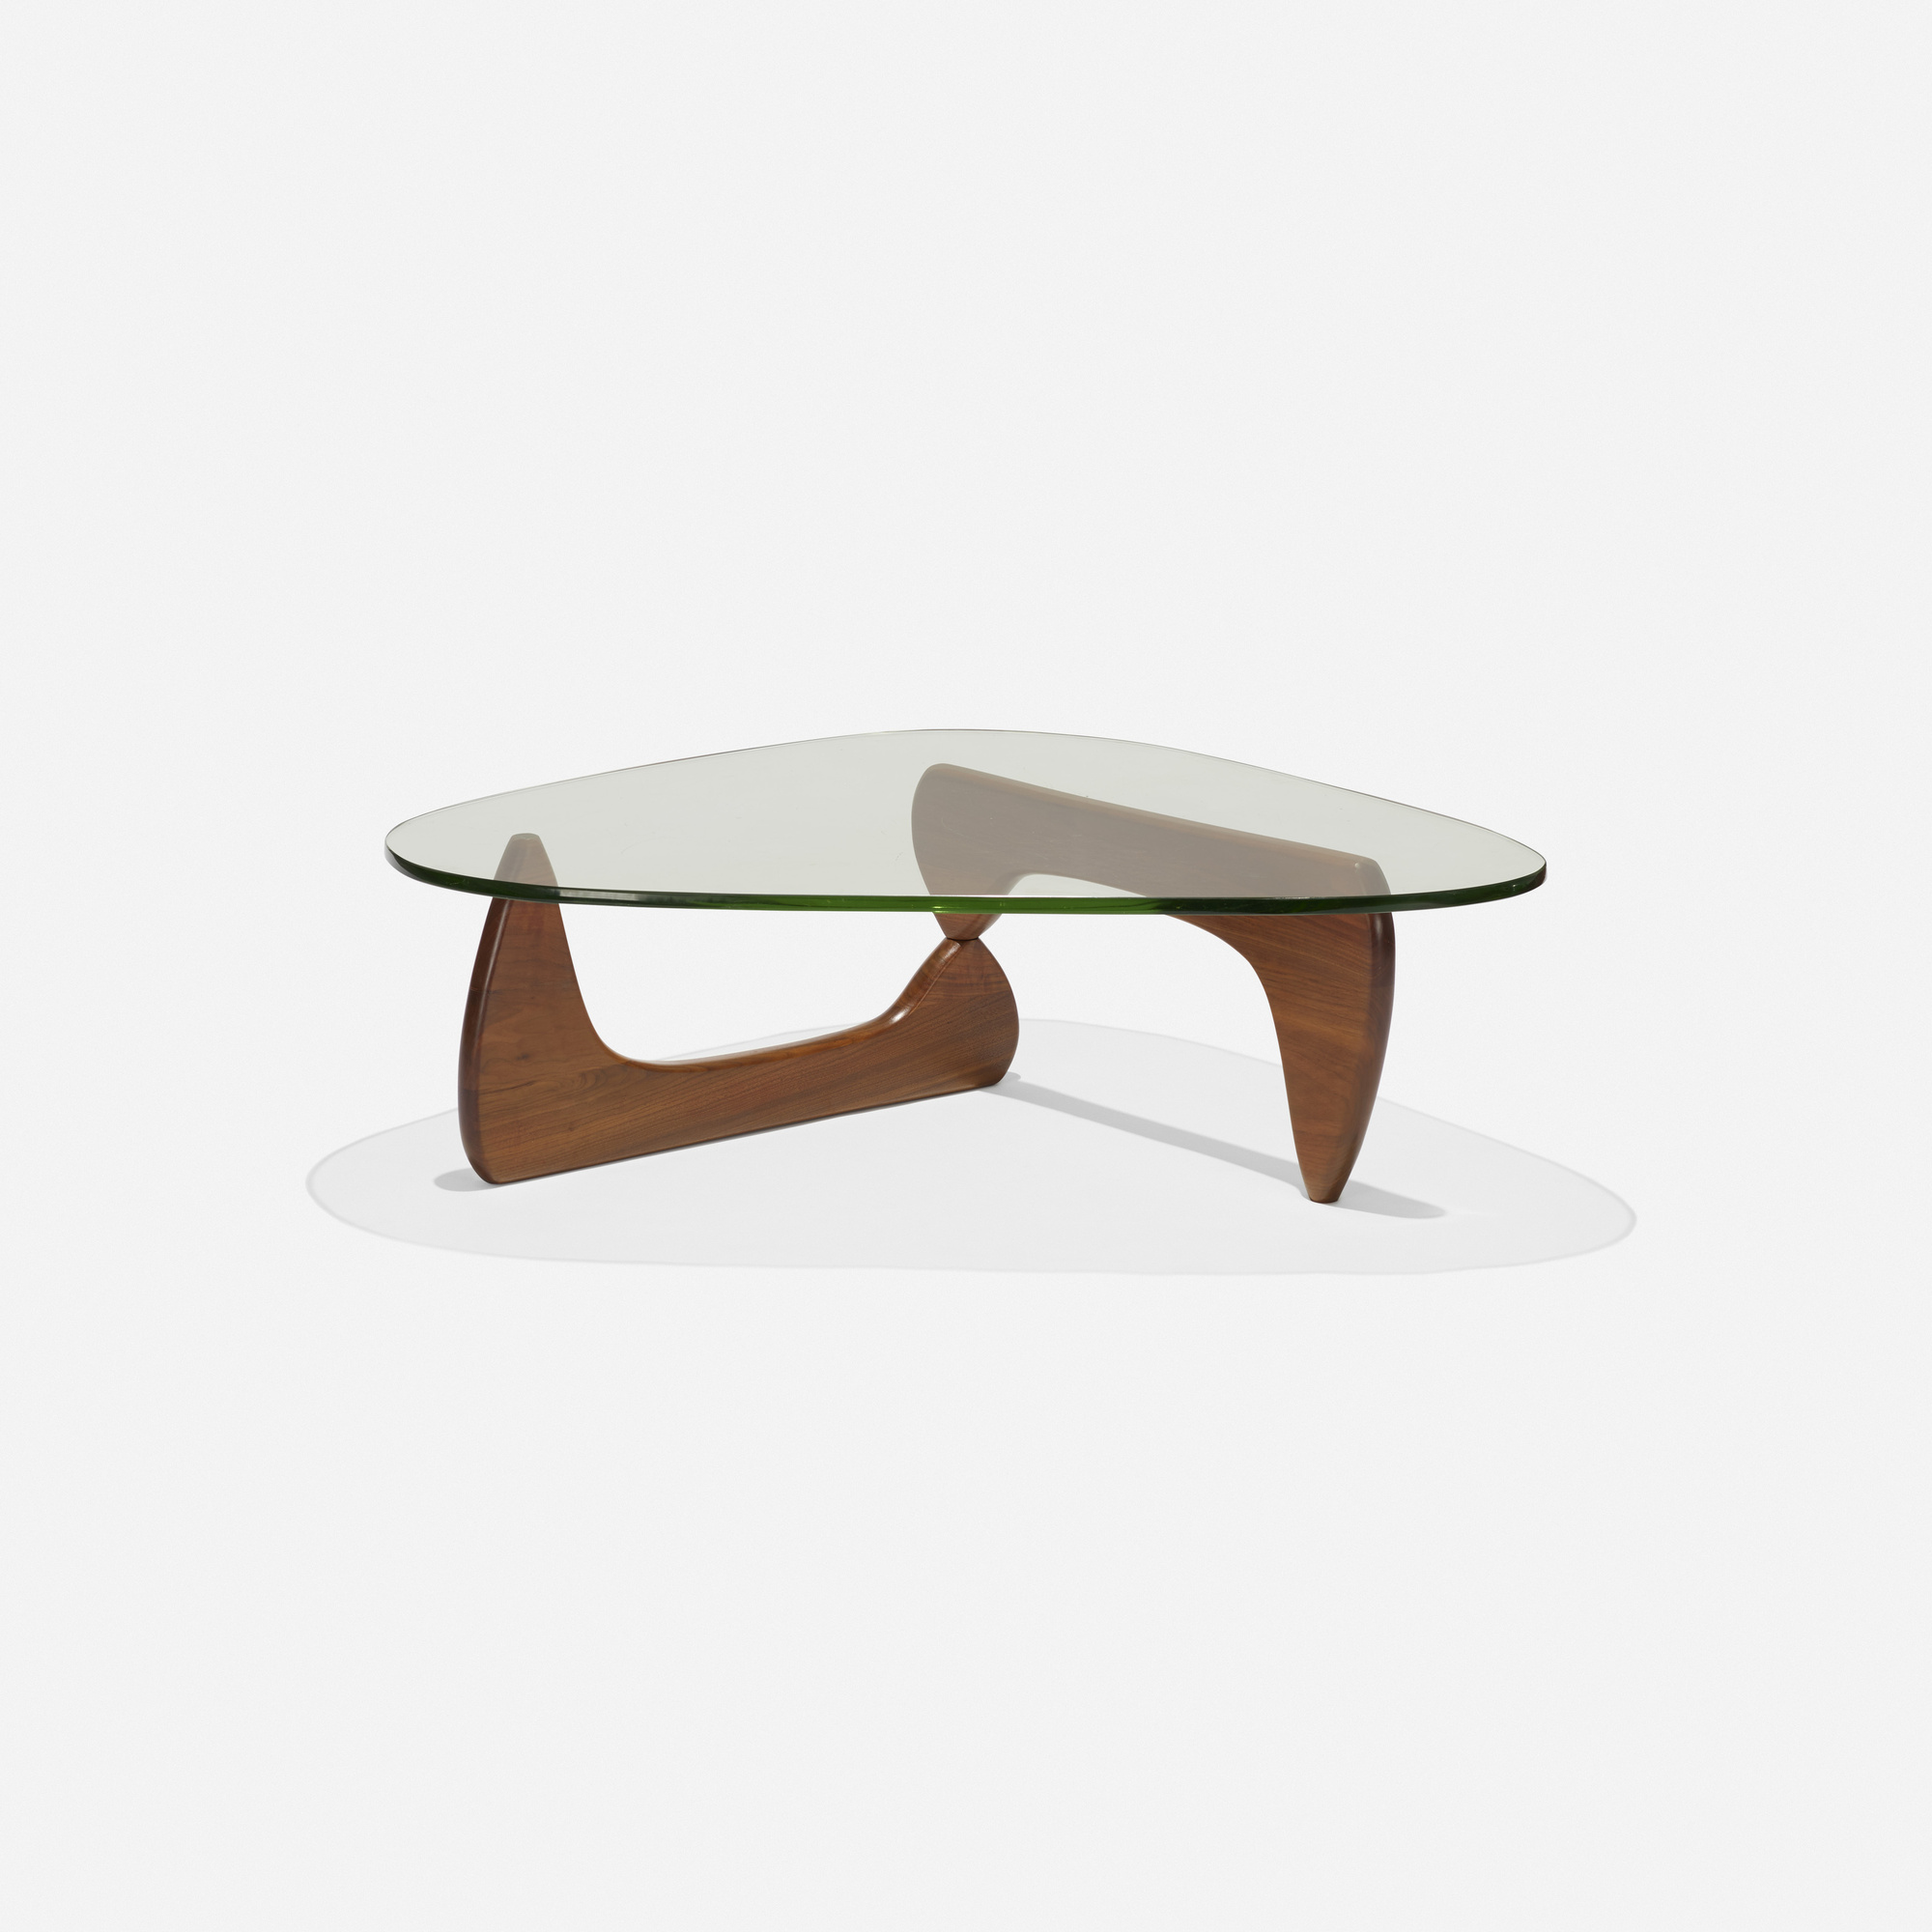 125 Isamu Noguchi early coffee table model IN 50 American